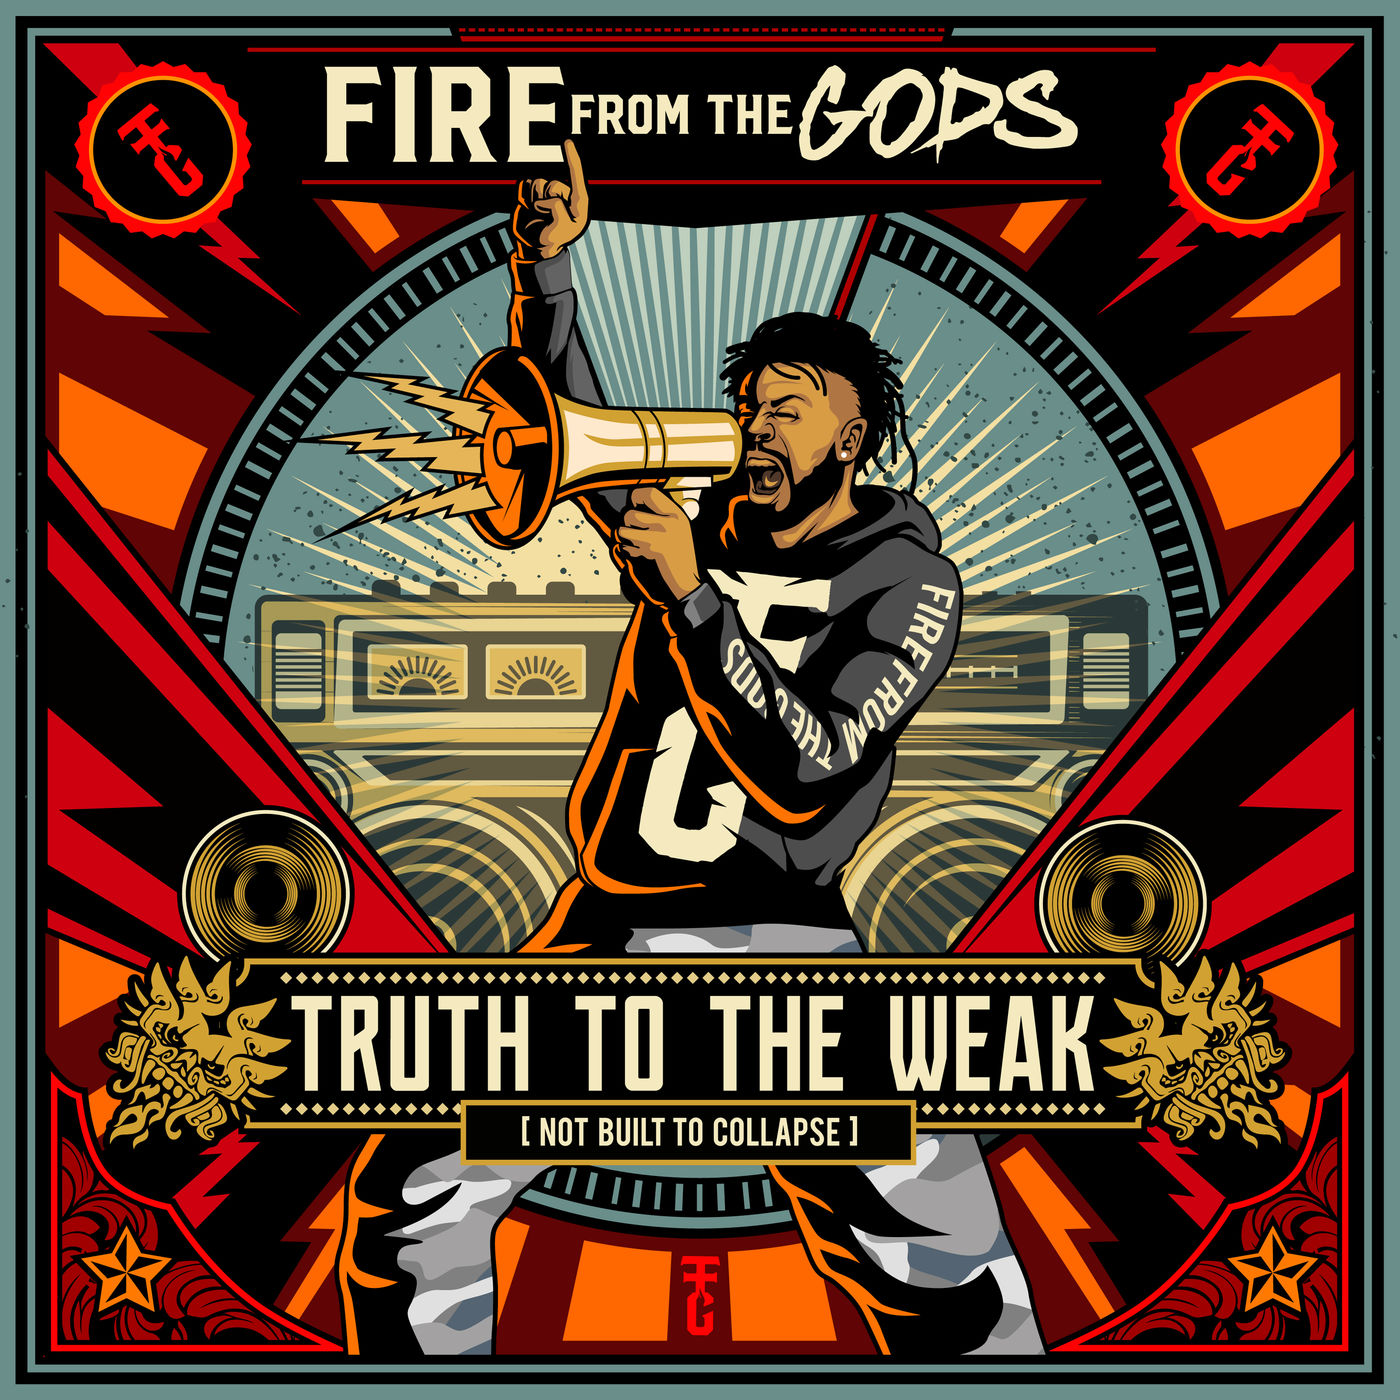 Fire From the Gods - Truth To the Weak (Not Built To Collapse) (Single) (2019)